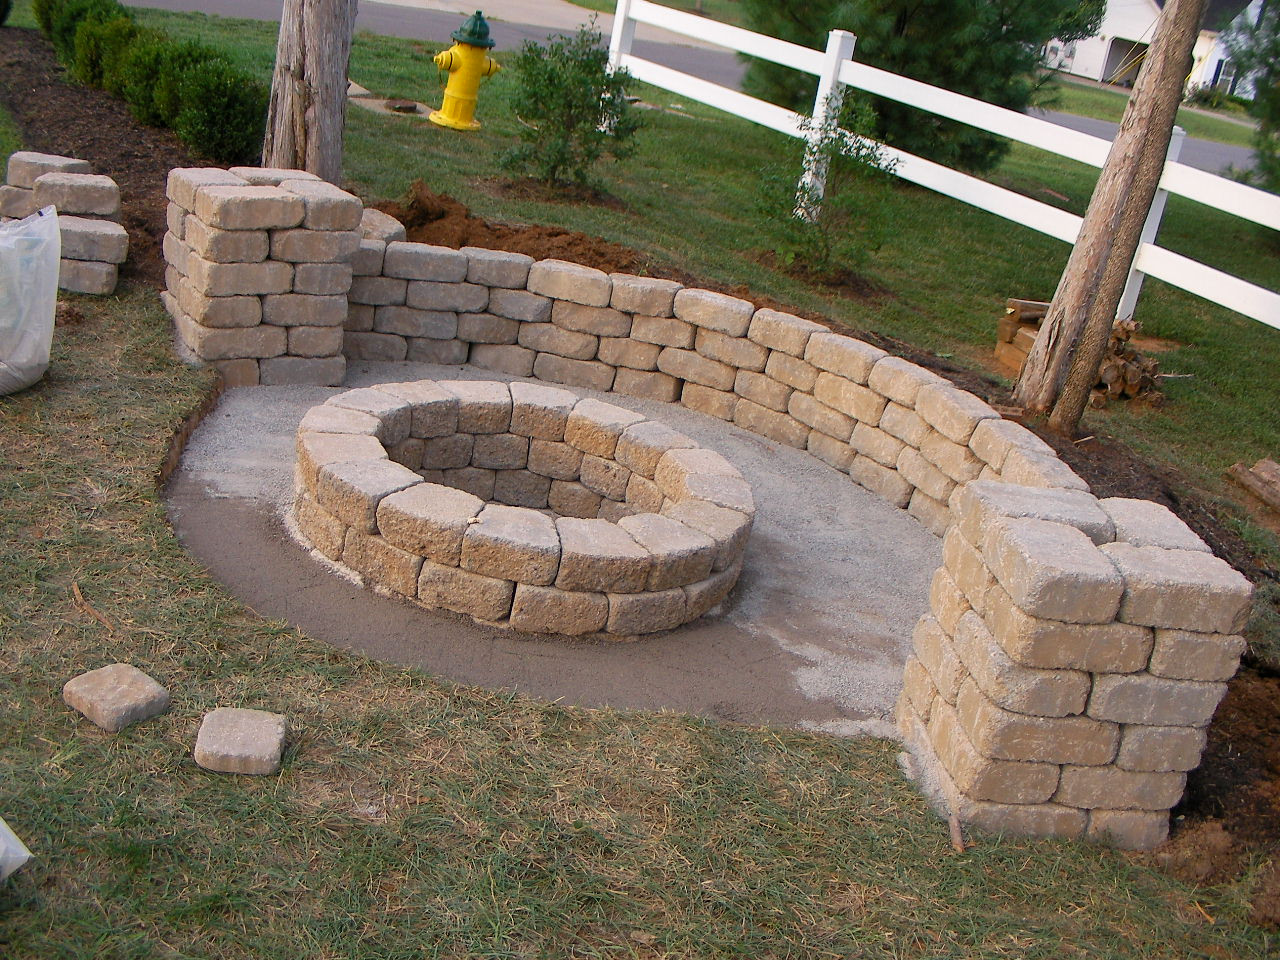 Best ideas about Fire Pits DIY . Save or Pin Creatively Luxurious DIY Fire Pit Project Here to Enhance Now.